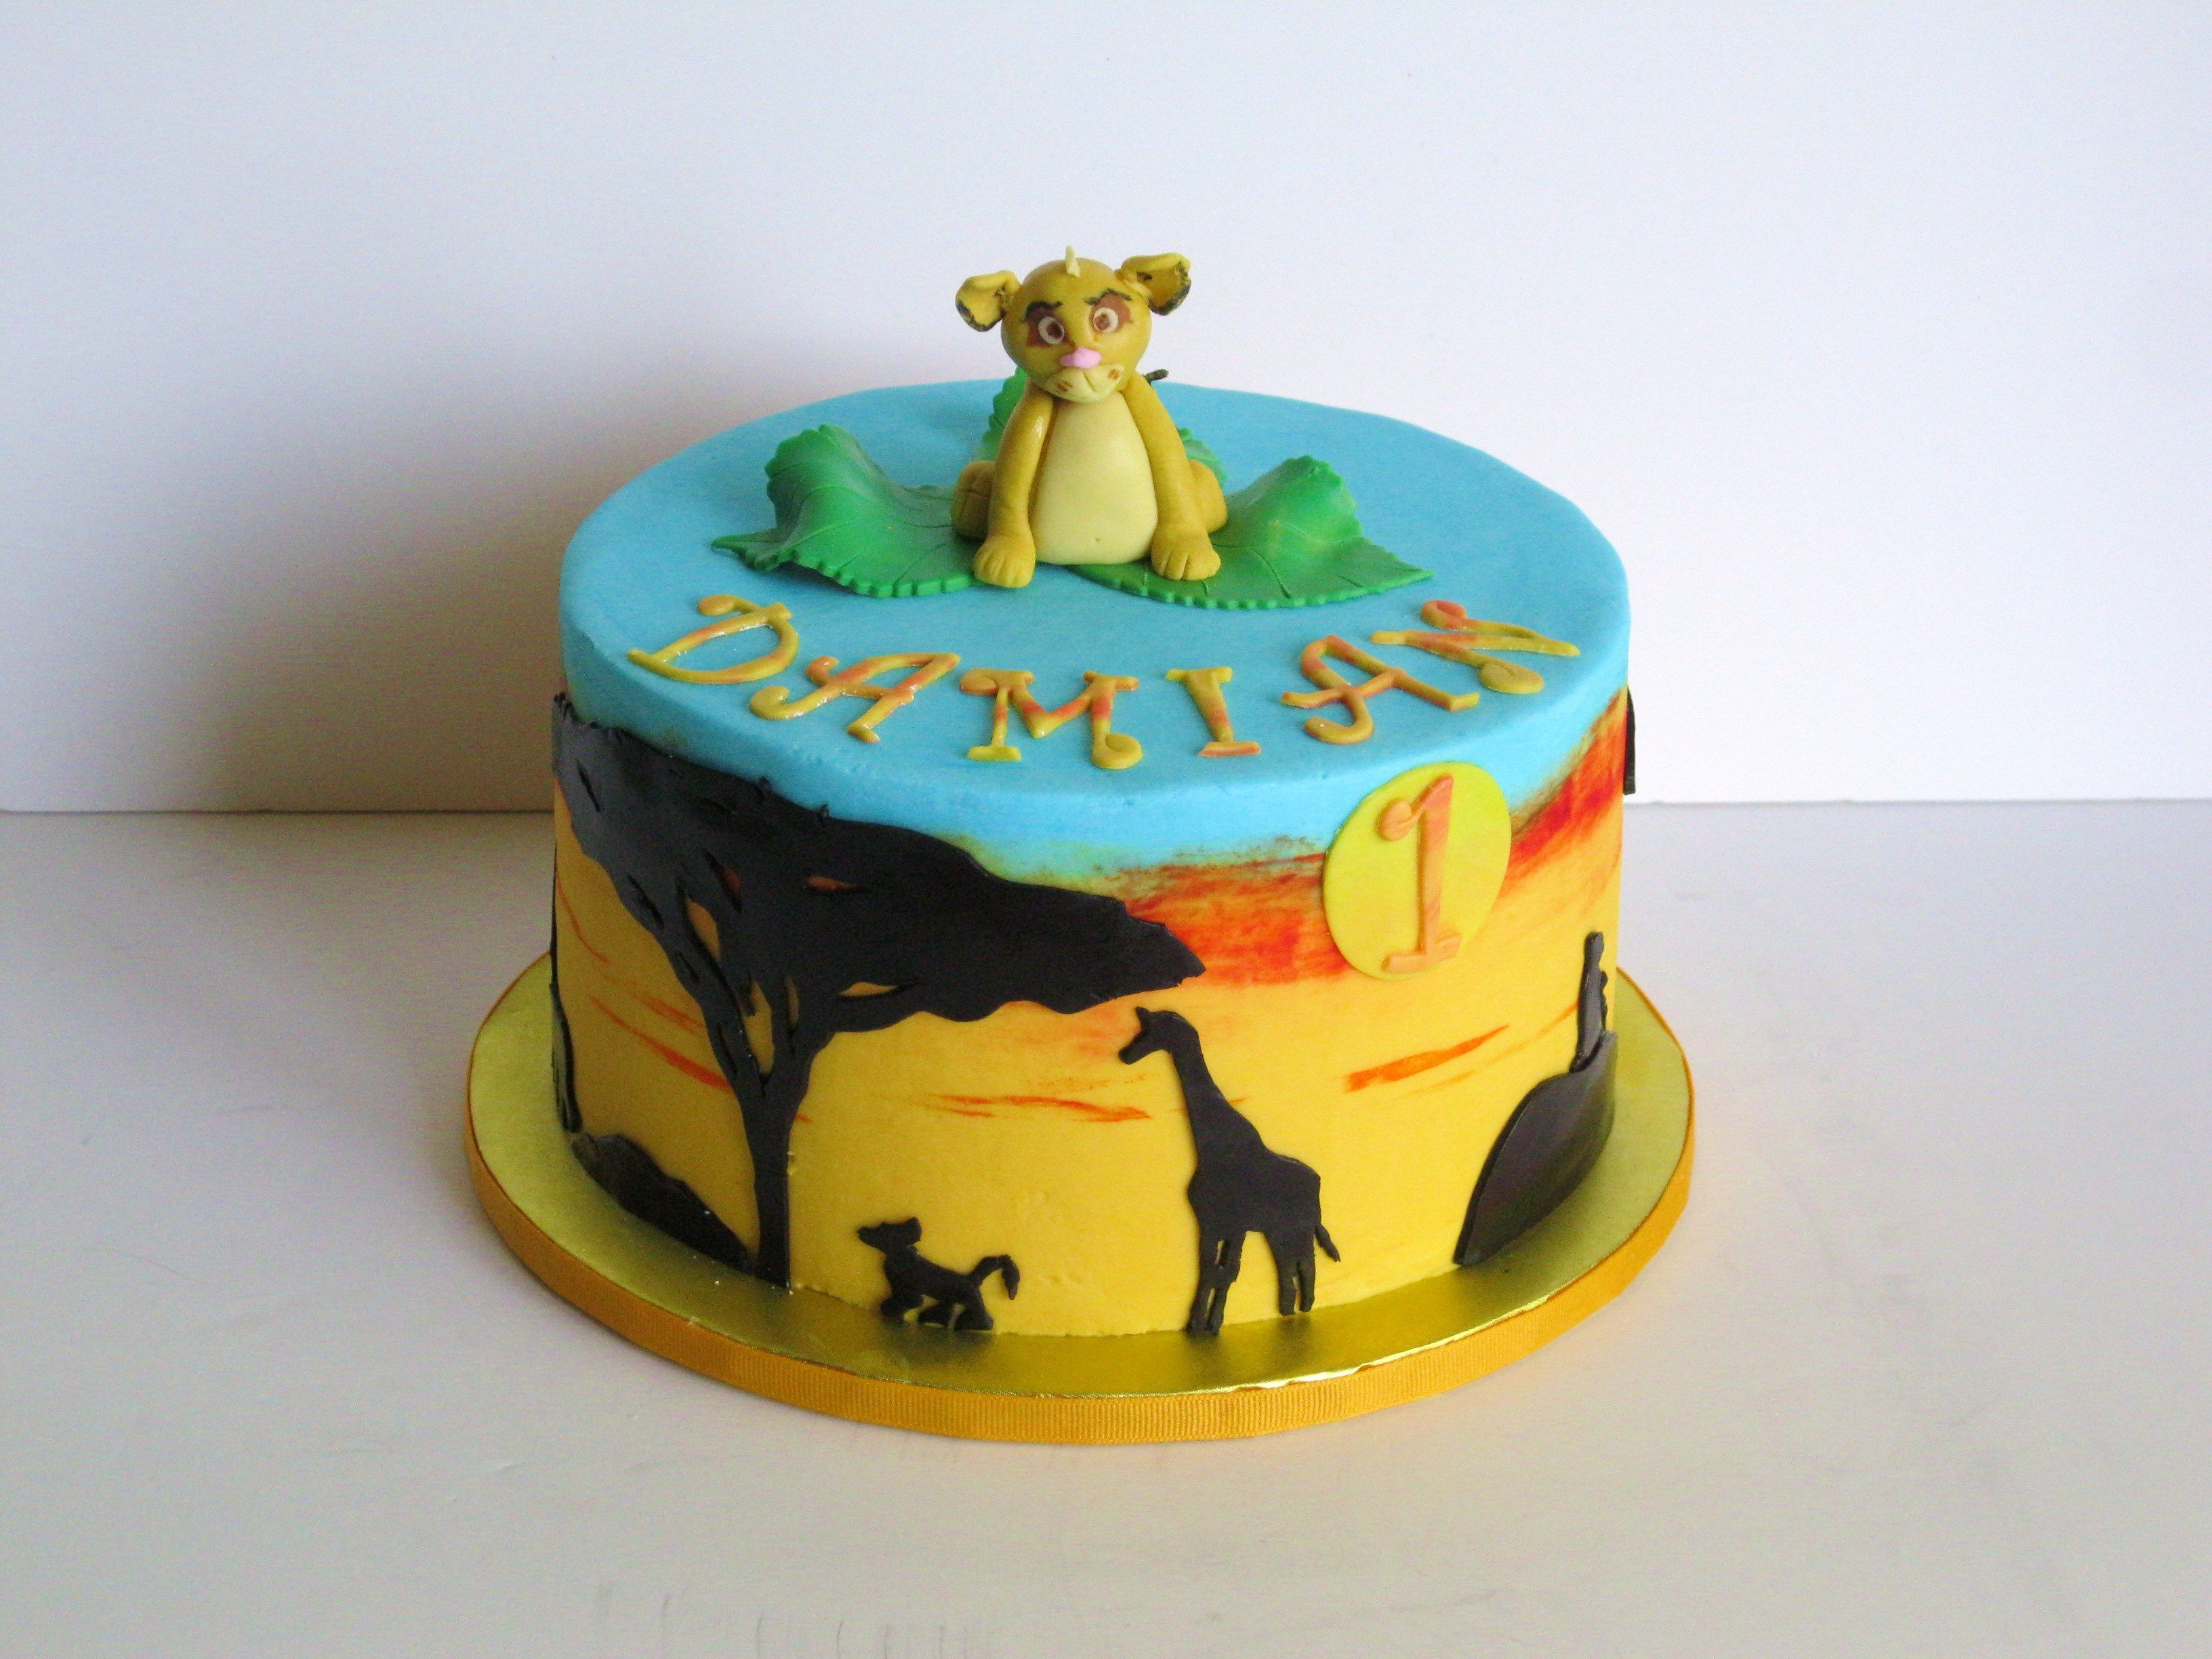 Lion King Simba Cake Covered In Buttercream With A Fondant Simba